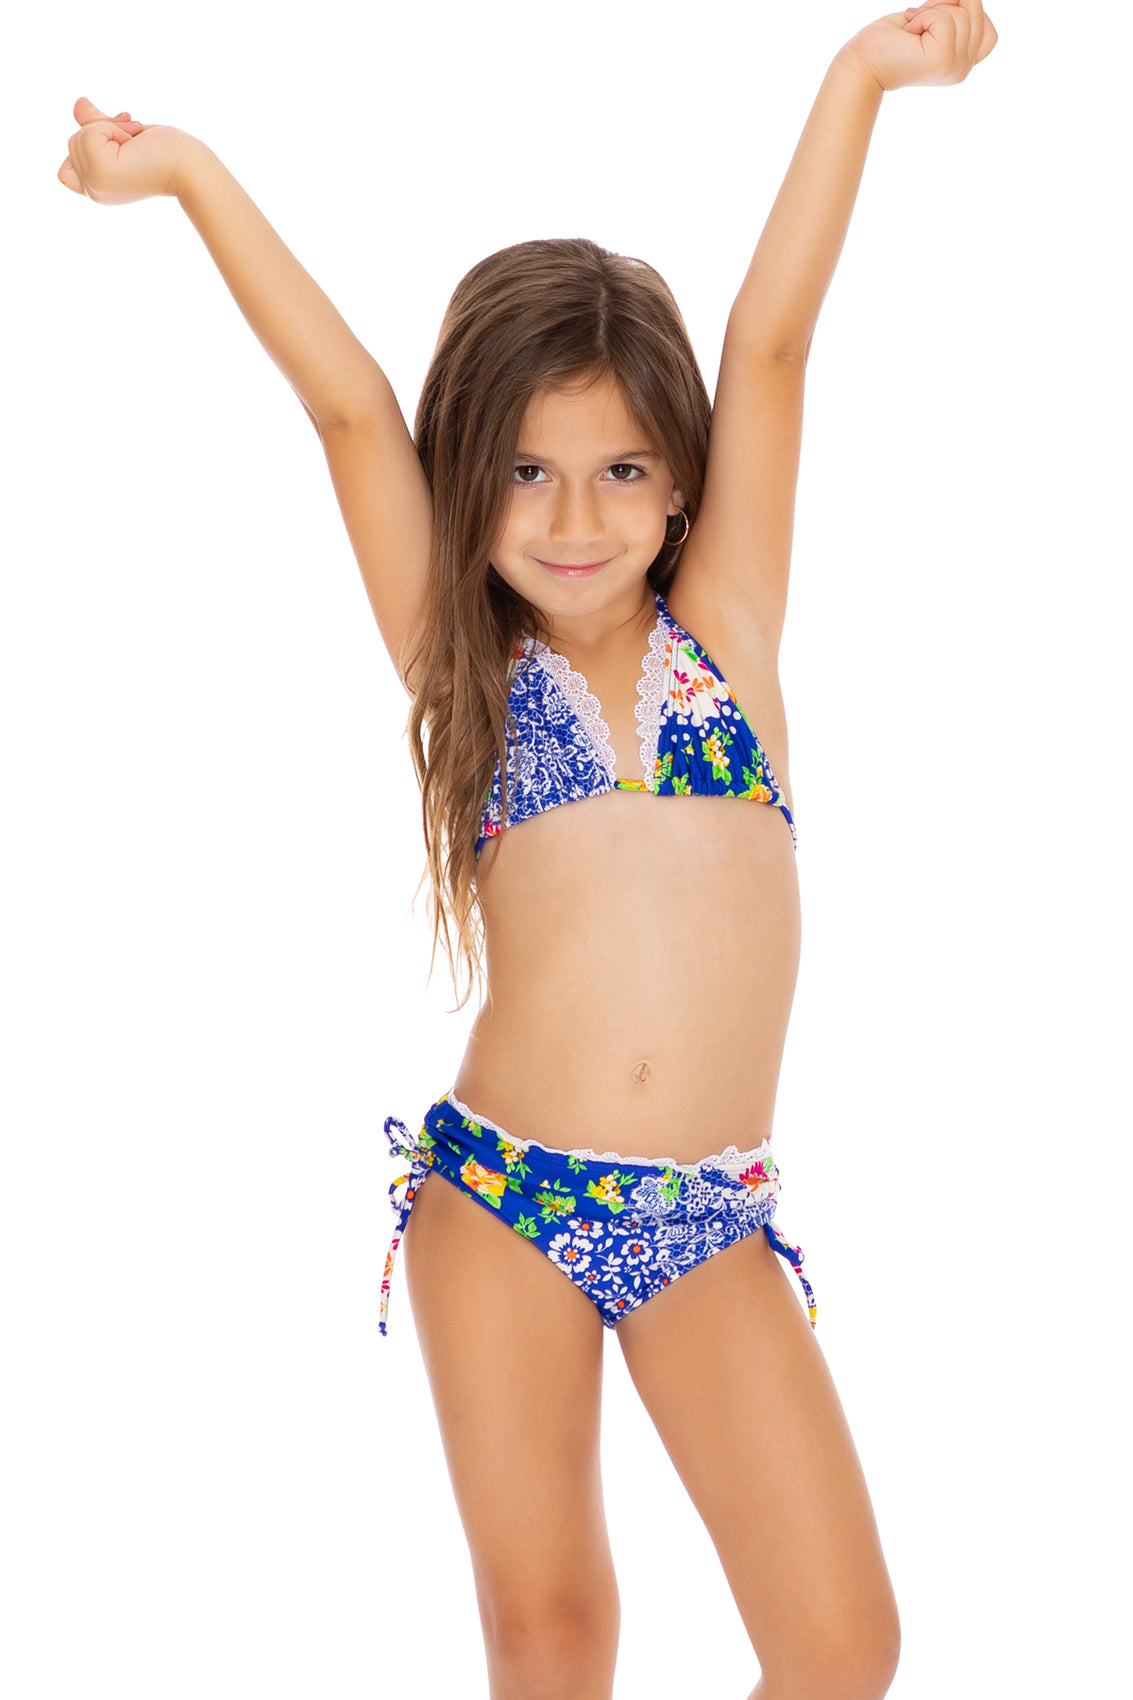 SPANISH LULLABY - Lace Trim Ruffle Triangle Top Bikini • Multicolor